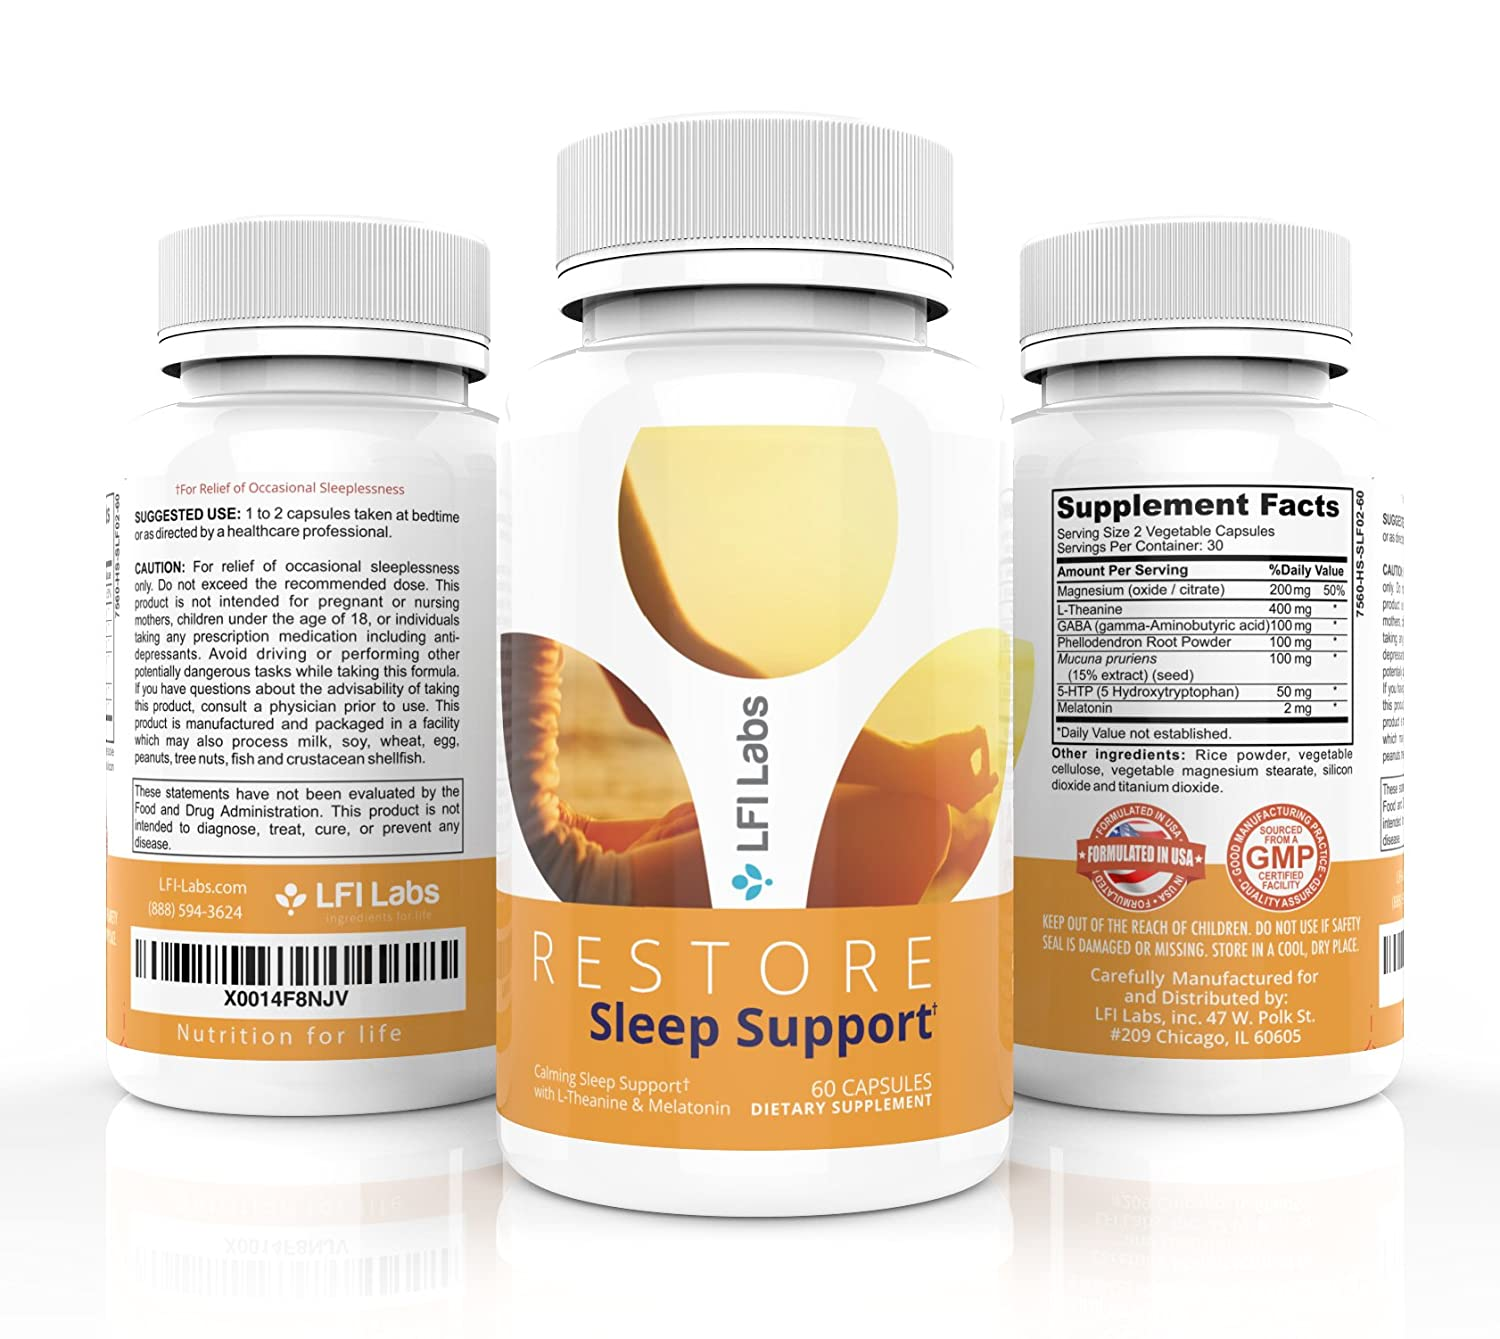 Amazon.com: Natural Melatonin Sleep Aid Supplement – with L-Theanine, 5 HTP & Antioxidants – Sleeplessness Support for Men & Women, Helps Soothes, ...